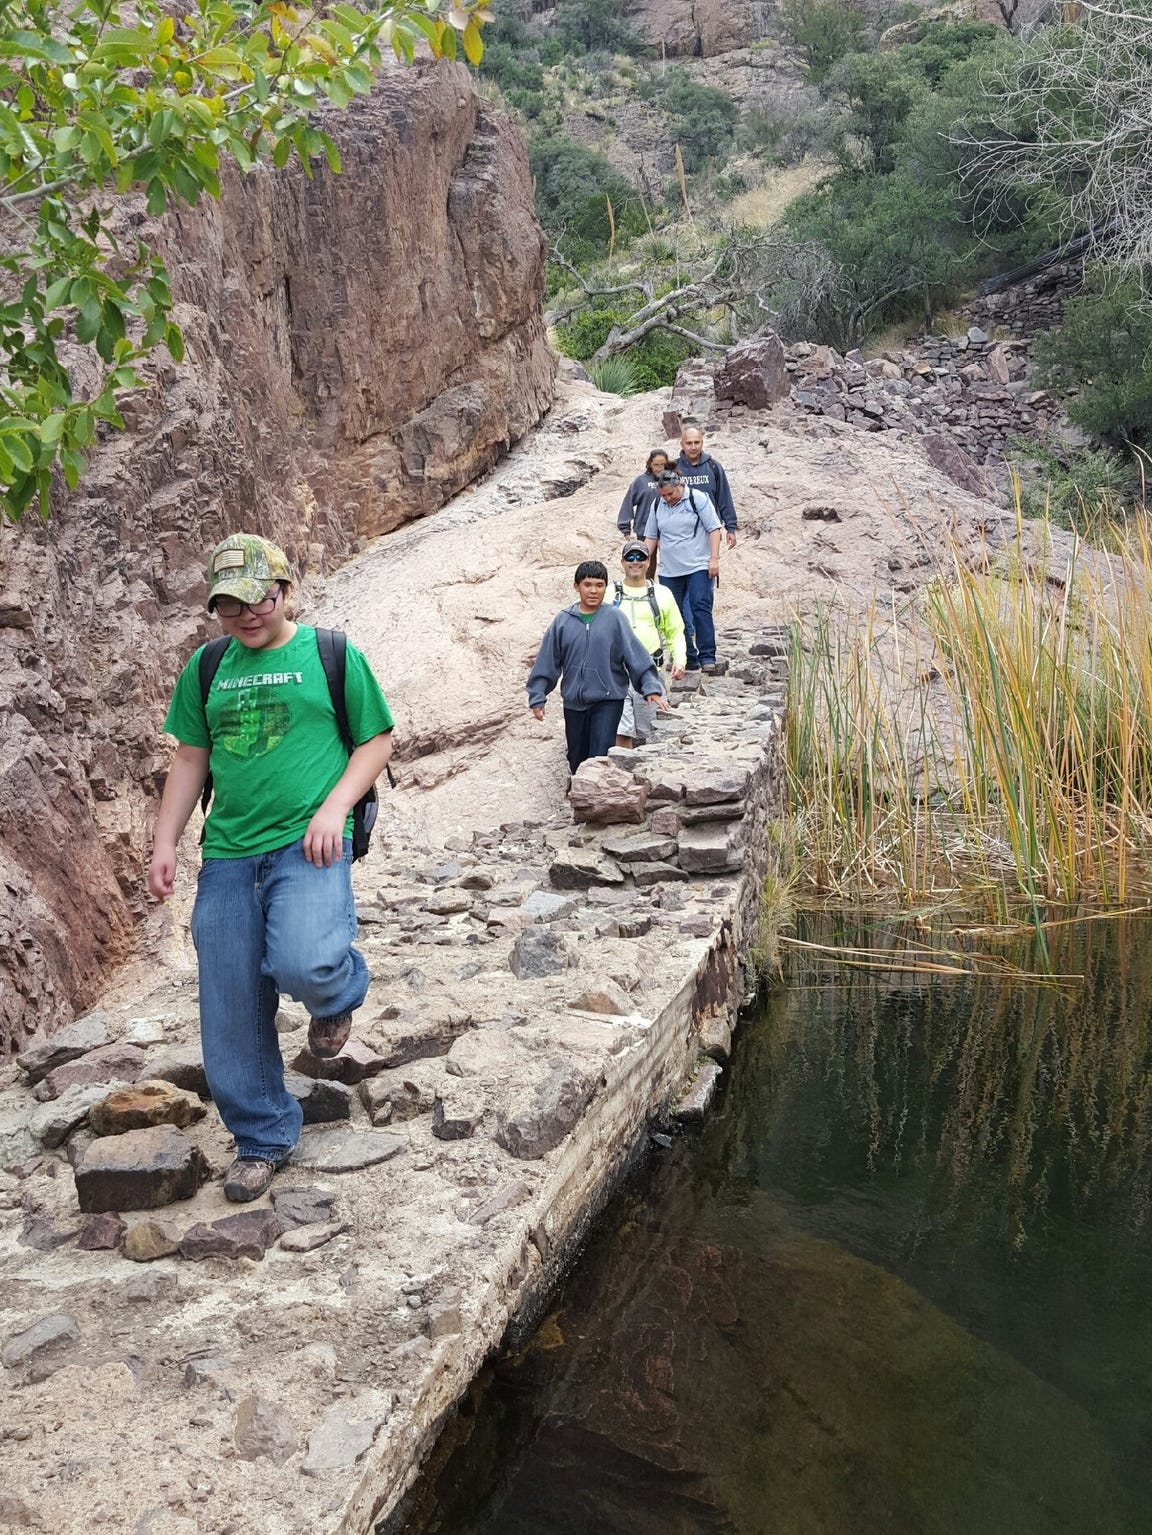 Kids hike a trail in Dripping Springs Natural Area